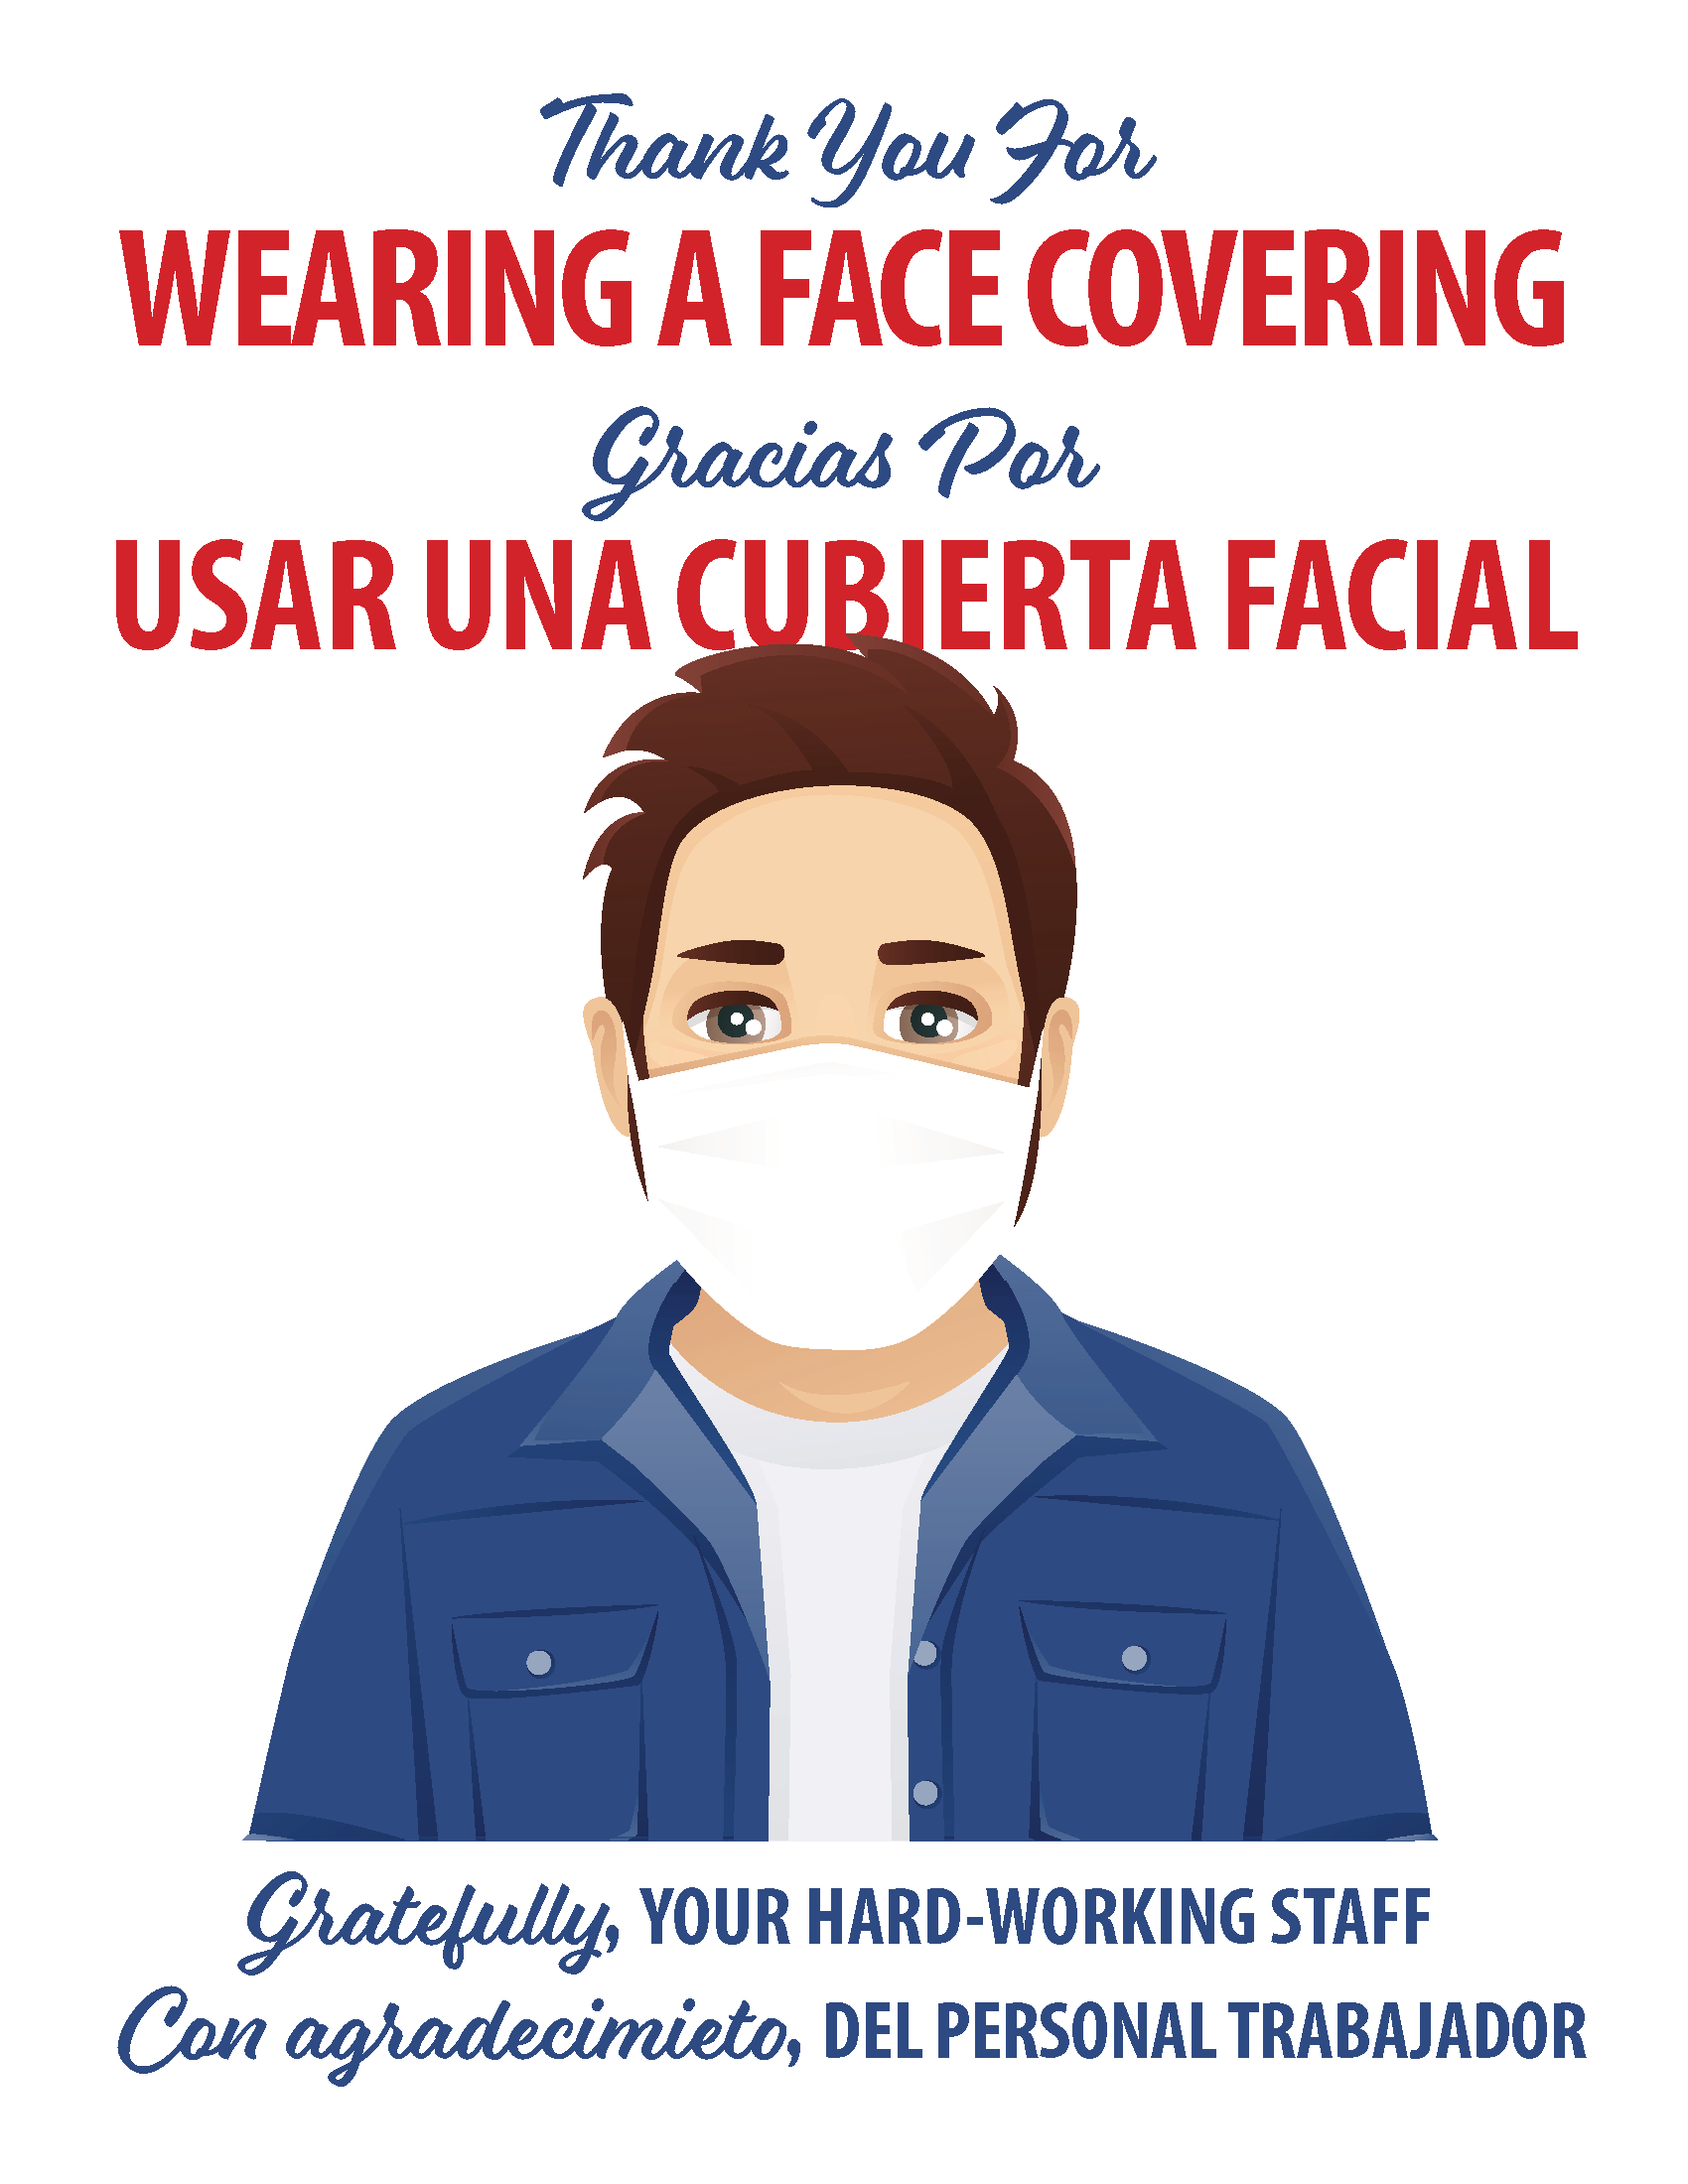 Business Face Covering - English & Spanish Opens in new window